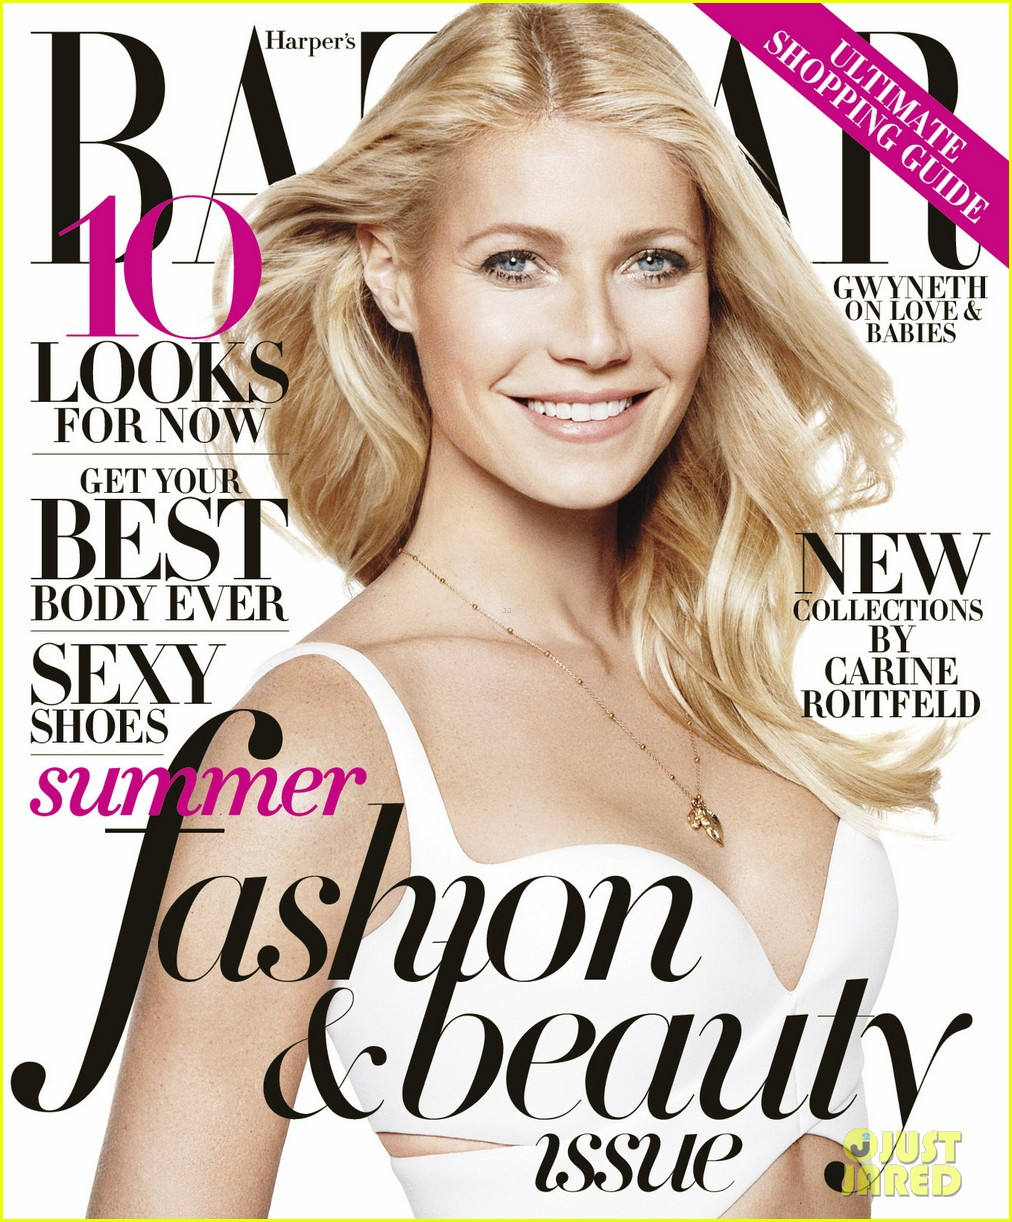 gwyneth-paltrow-covers-harpers-bazaar-may-2013-01